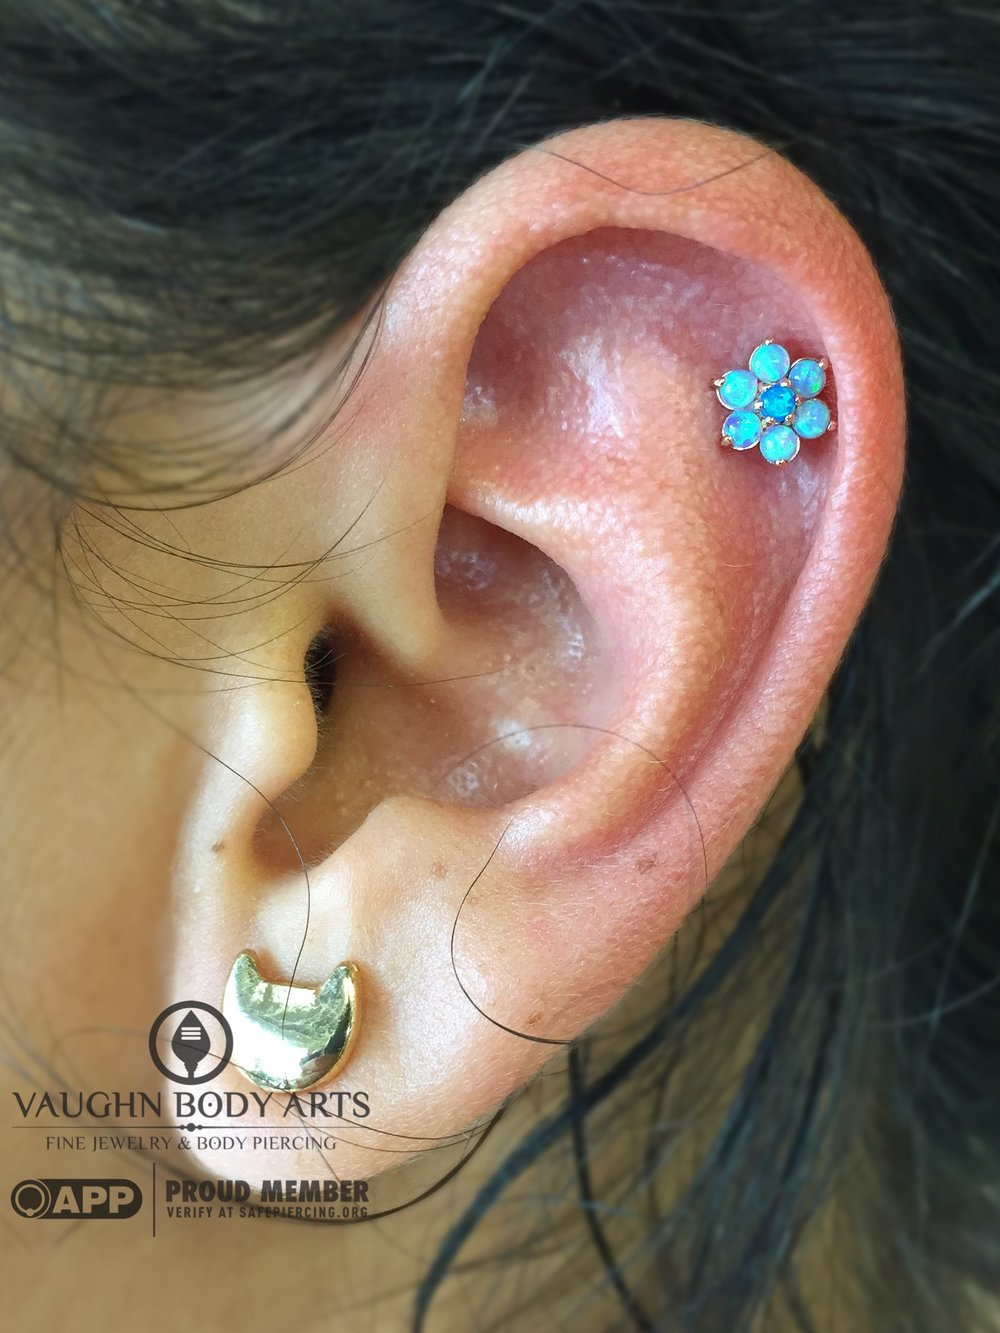 Helix piercing with an 18k yellow gold flower from Anatometal.